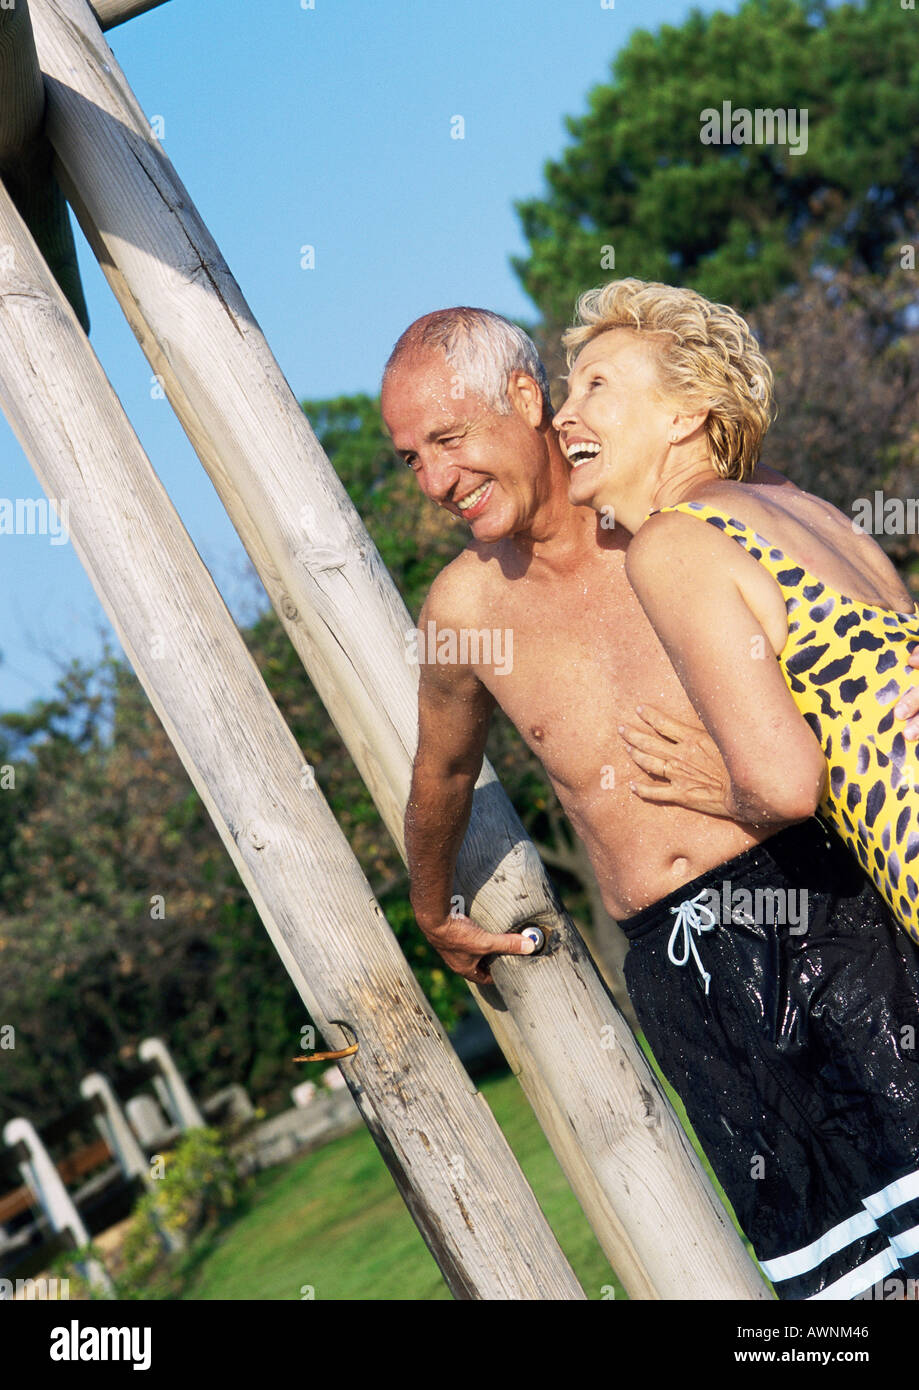 mature man and woman standing in bathing suits in outdoor shower